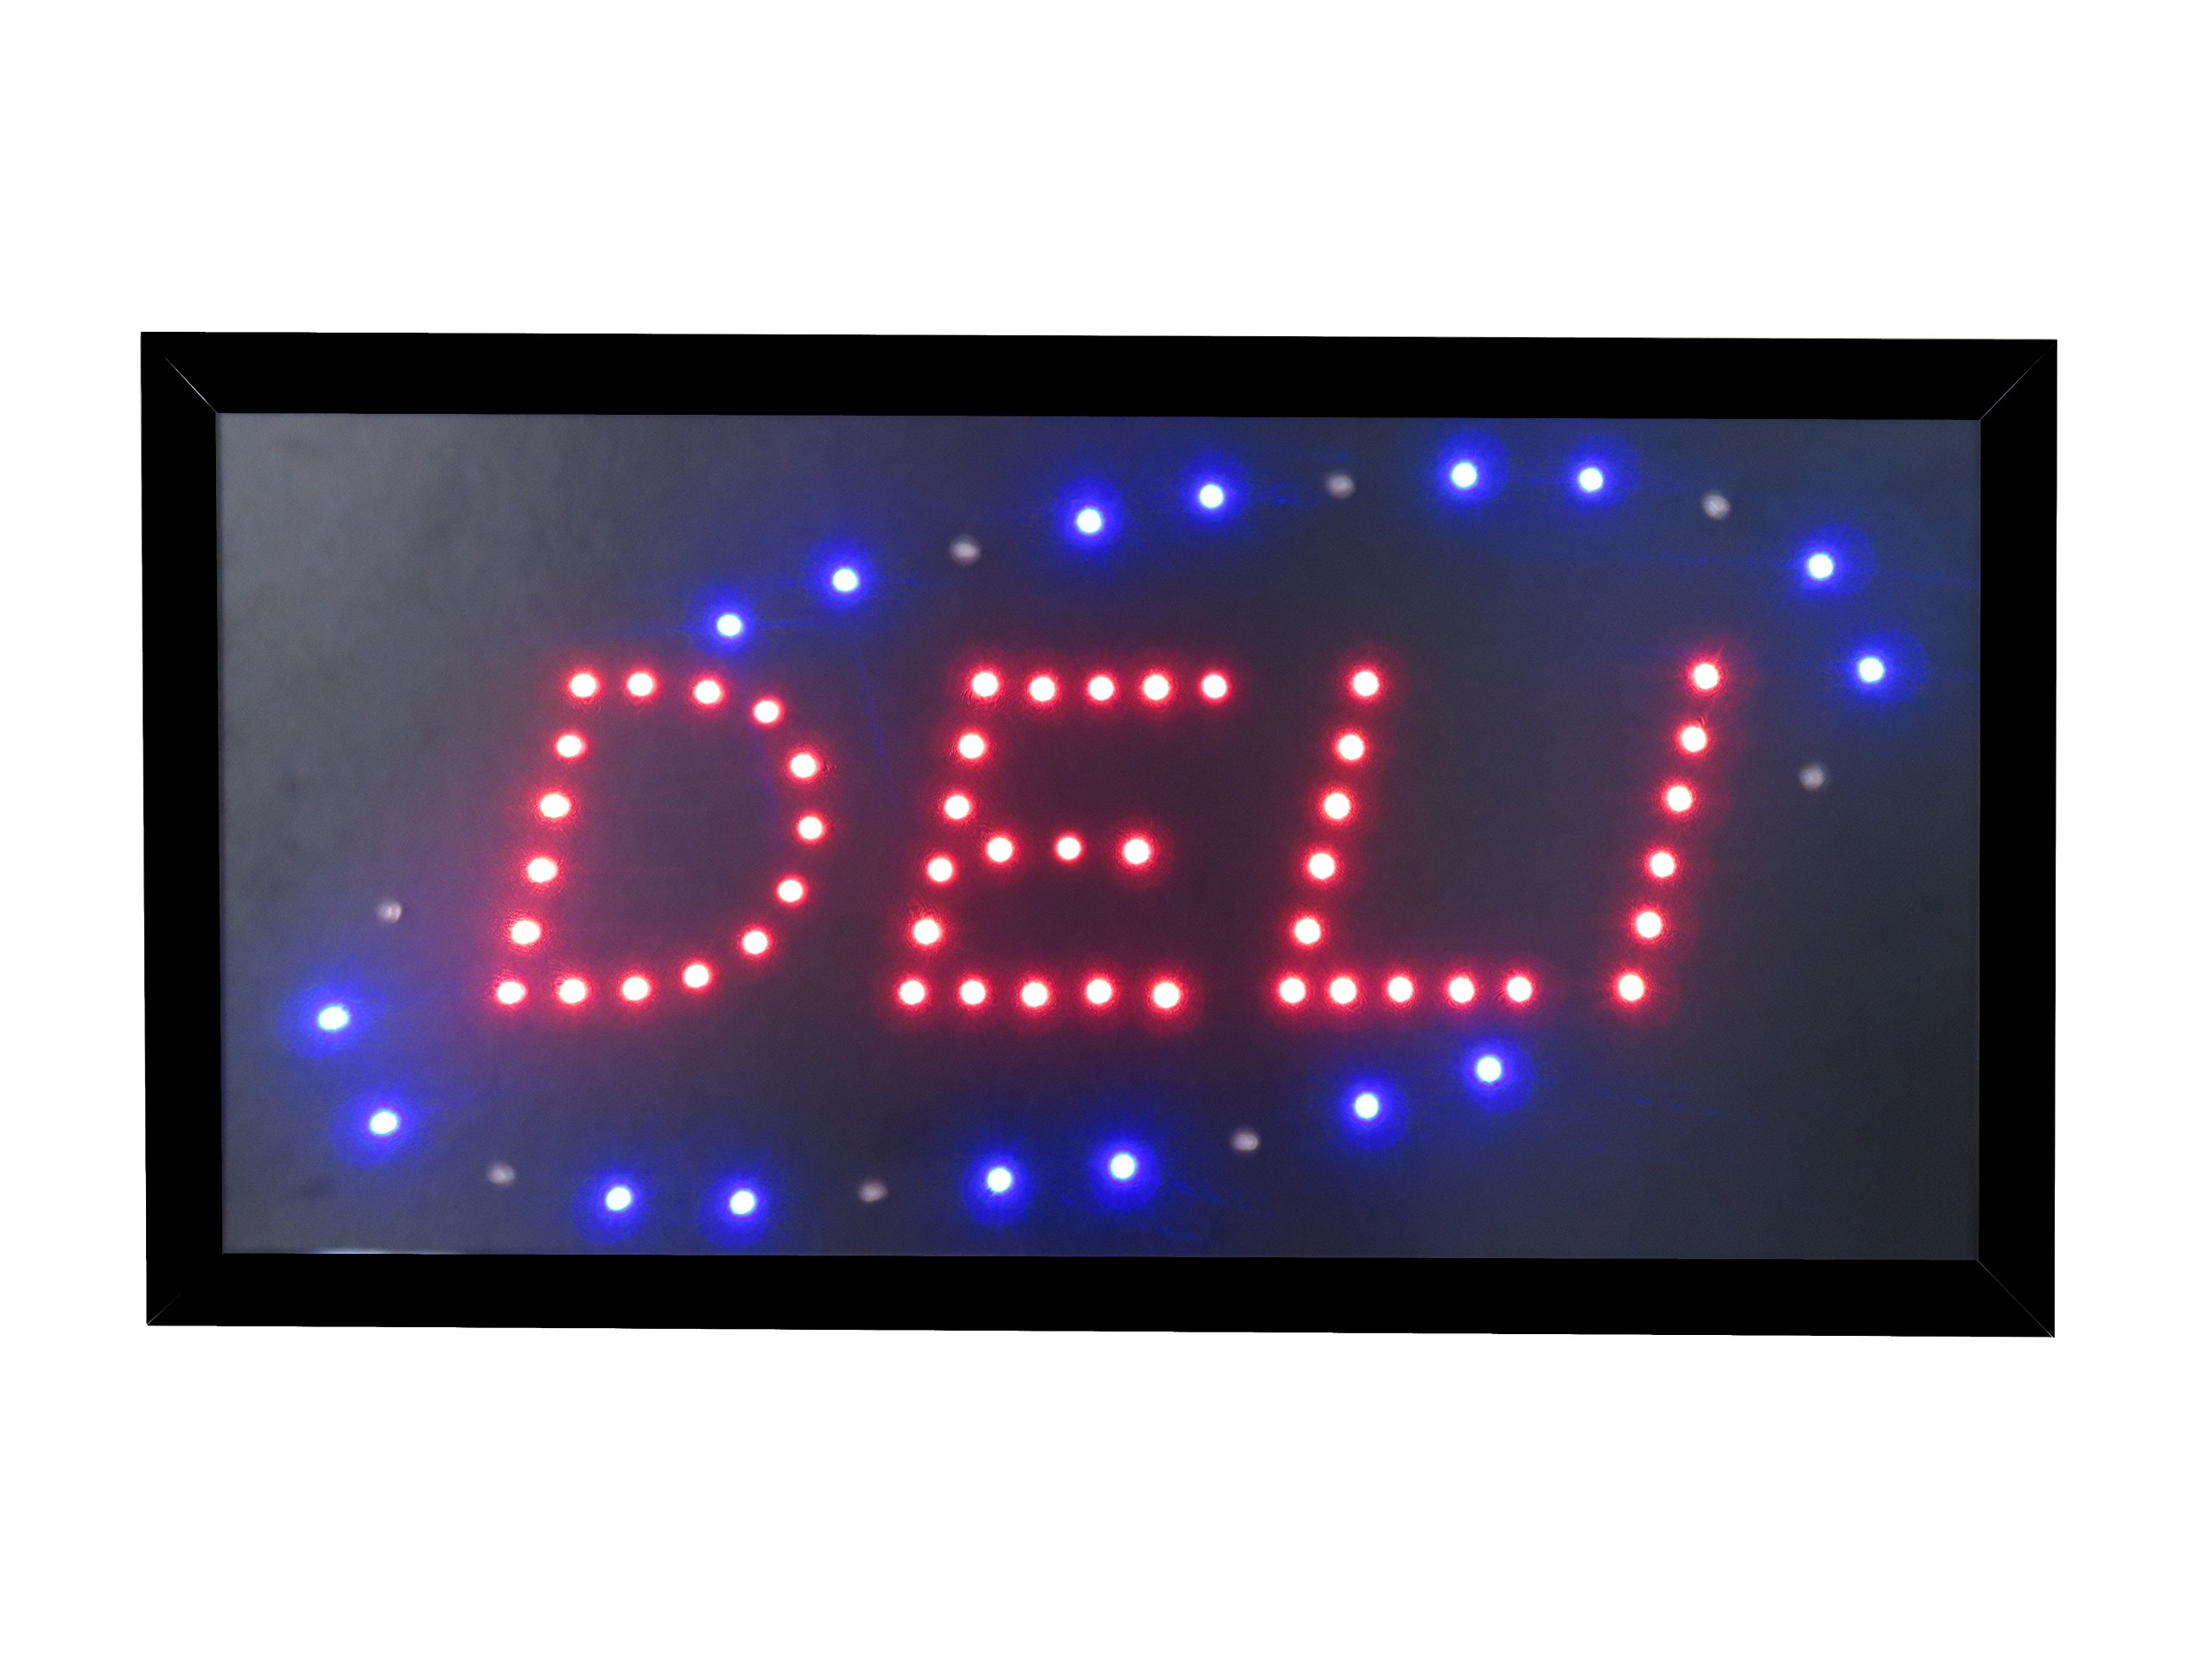 19x10 Neon Sign LED Lighting - Single Switch: Power & Animation for Business Identification by Tripact Inc - Deli